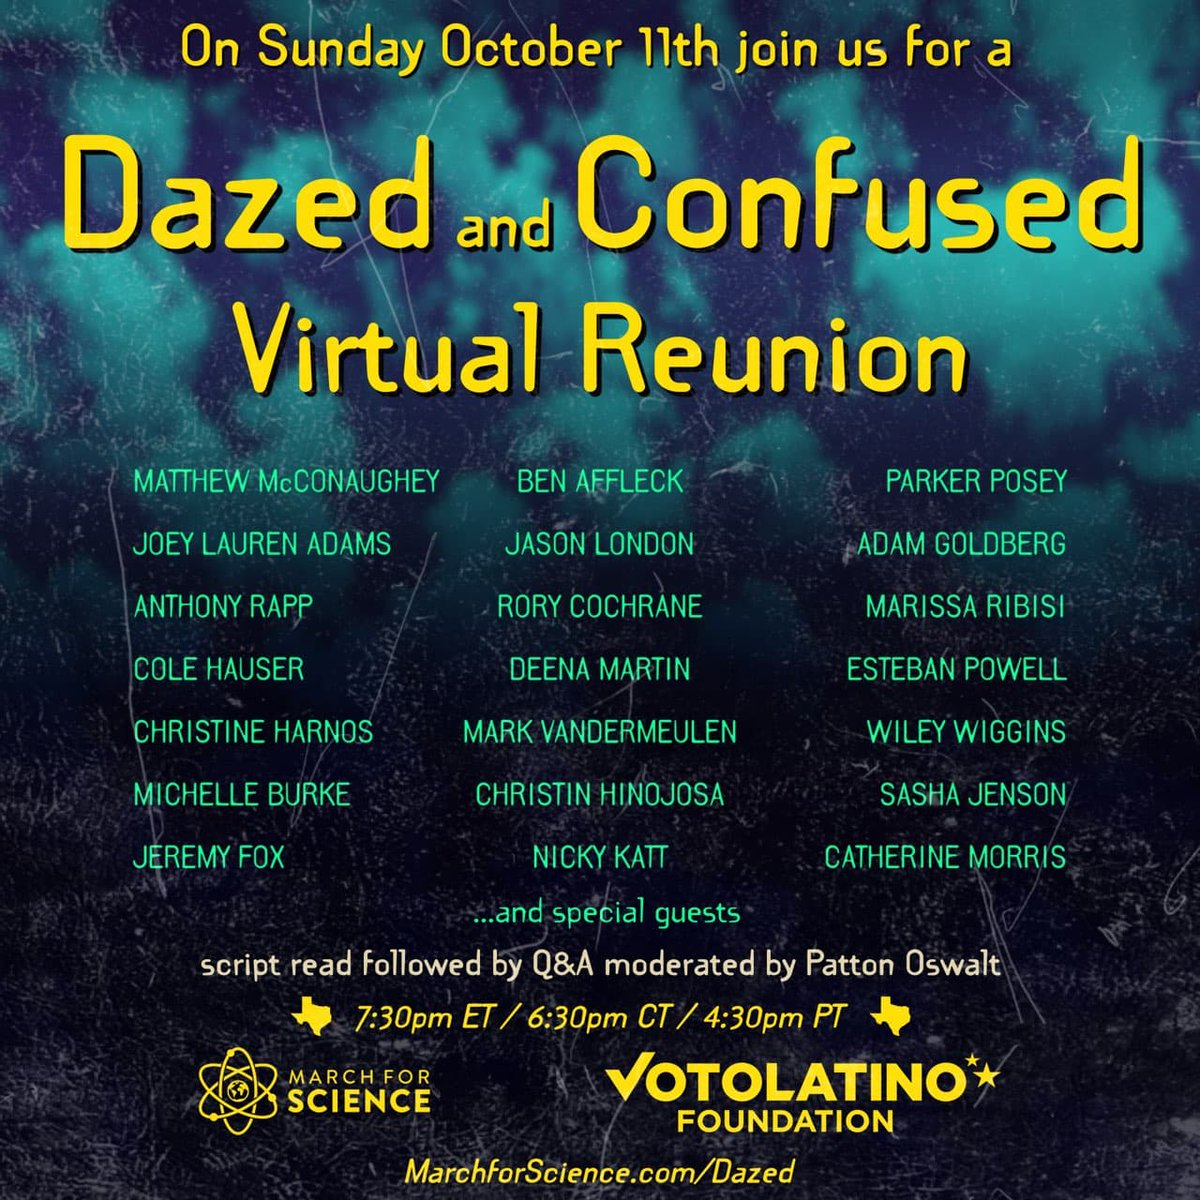 The cast of #dazedandconfused are reuniting to raise funds benefitting the voter turnout efforts of March For Science & @votolatino Foundation! Donate any amount to see an exclusive, live table reading and Q&A moderated by @pattonoswalt on Oct 11th at